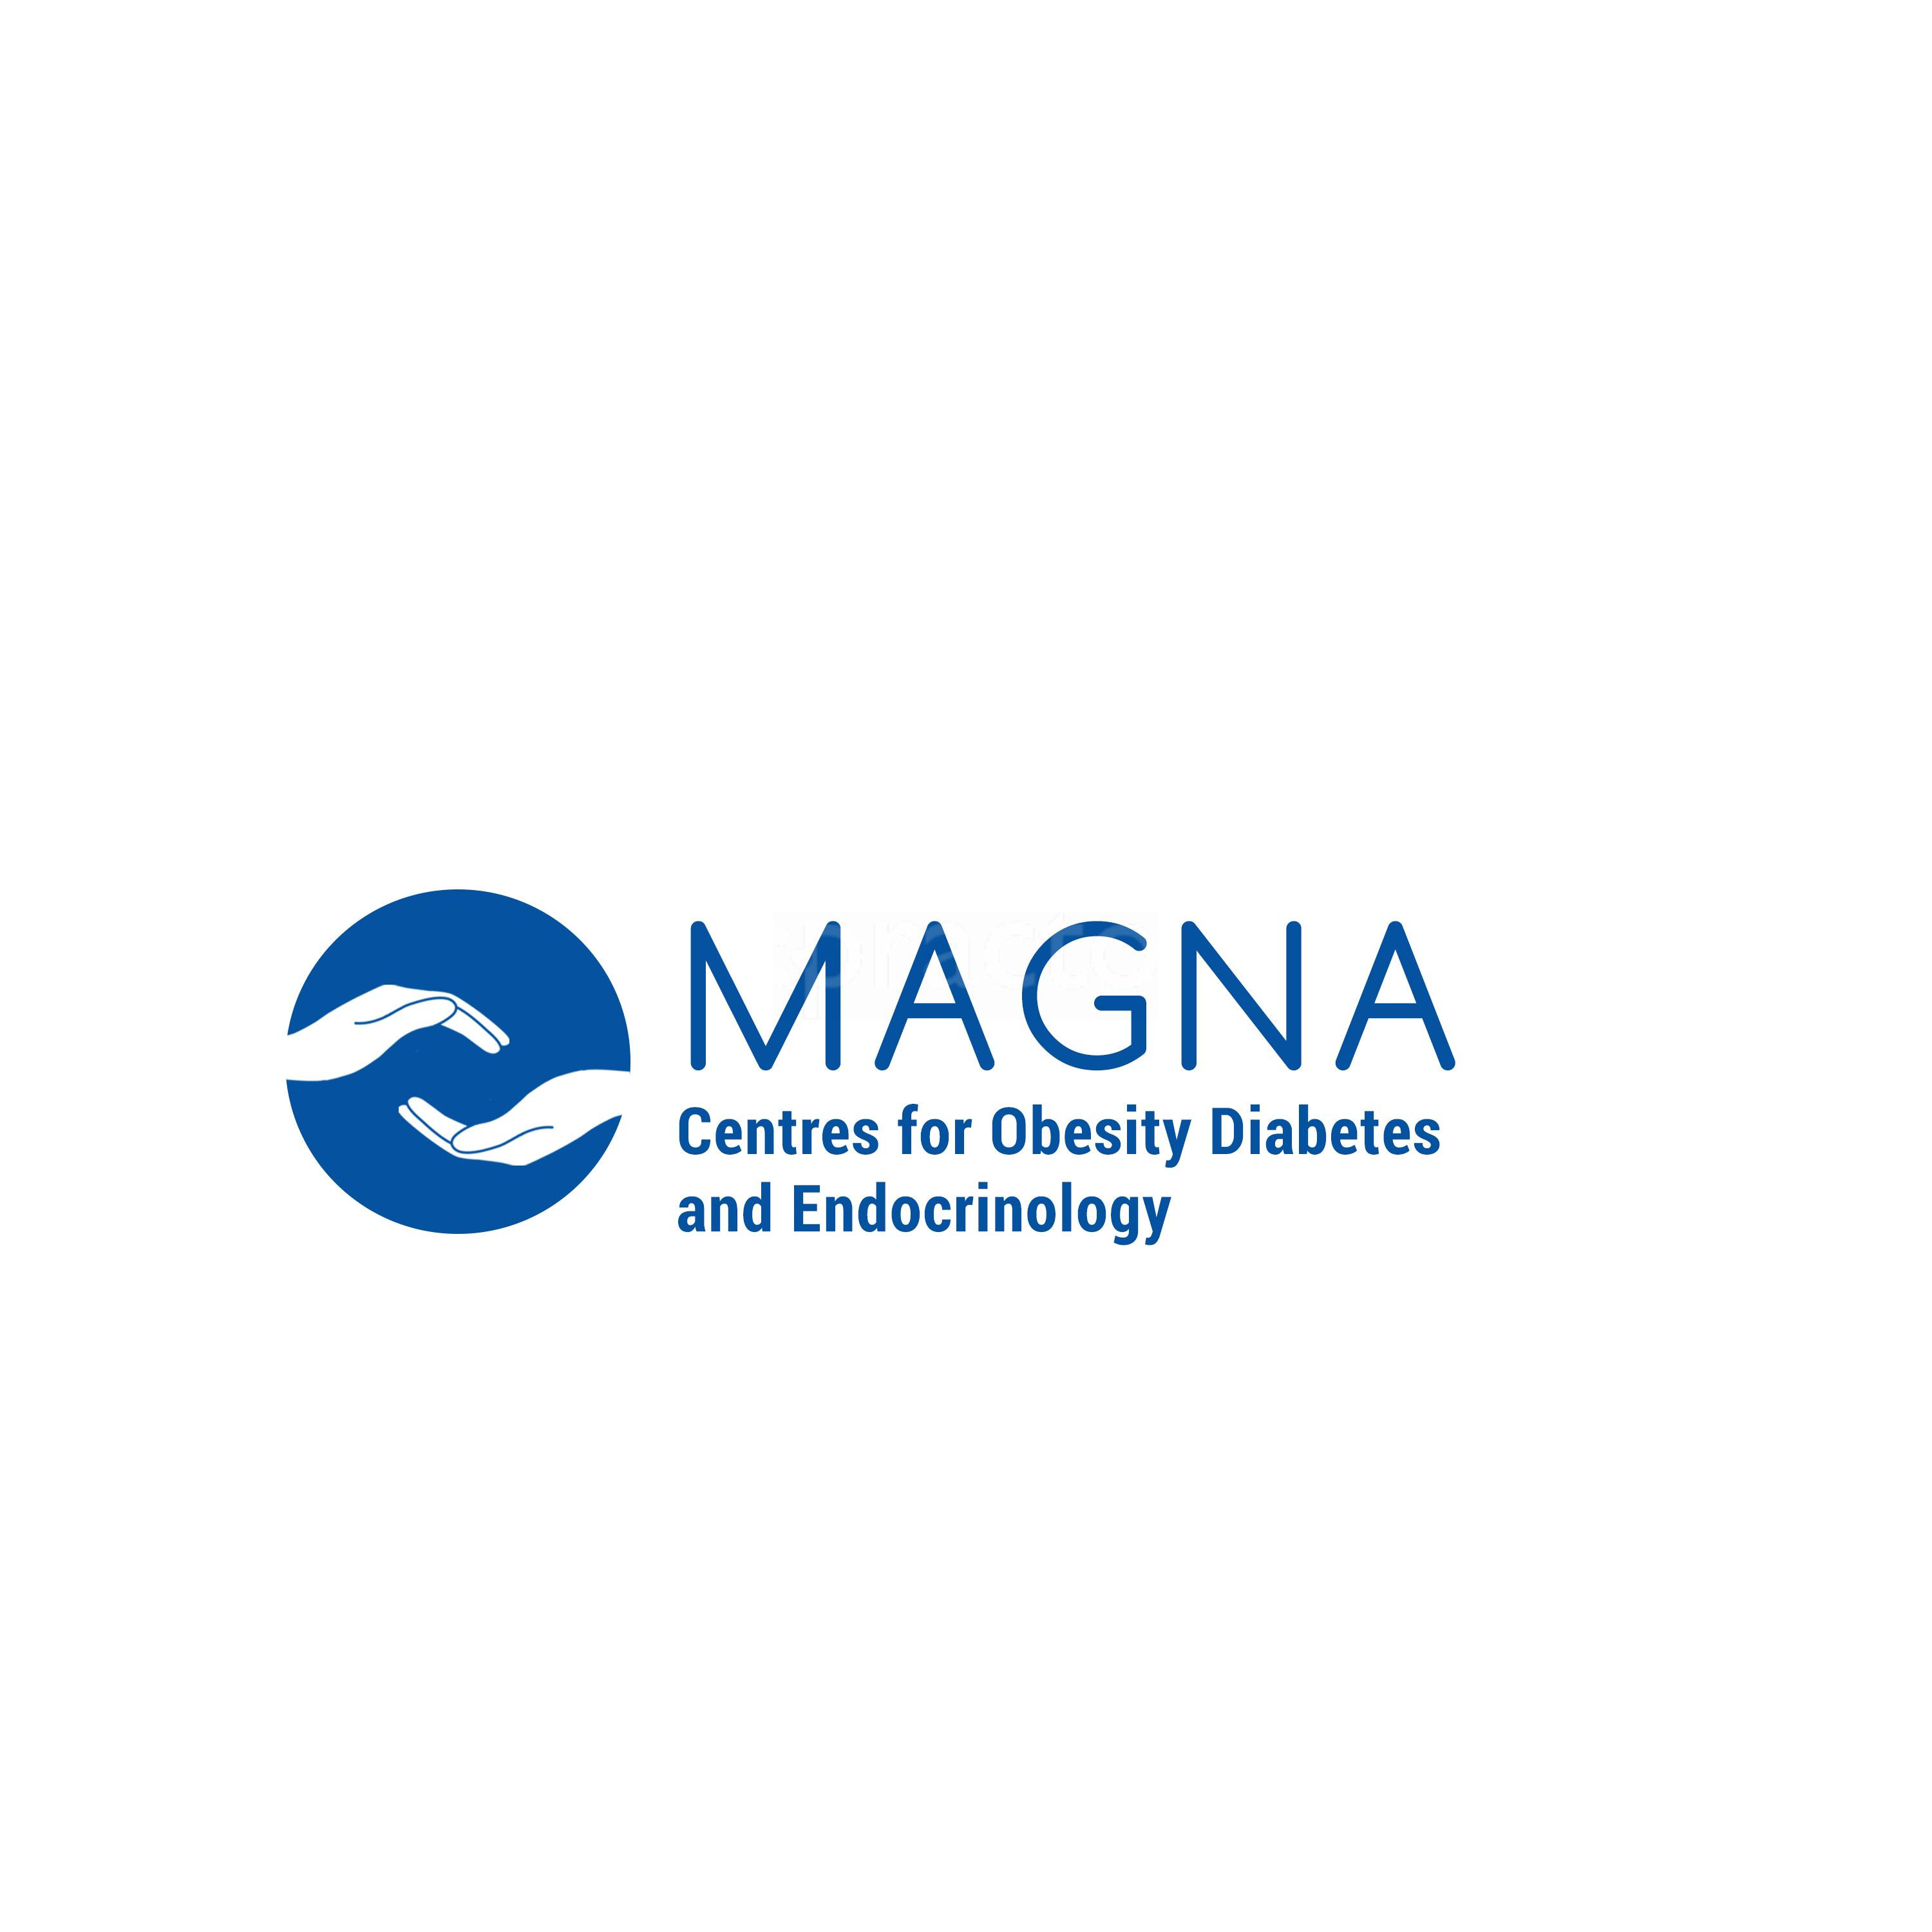 Magna Clinic For Obesity Diabetes And Endocrinology, Bangalore